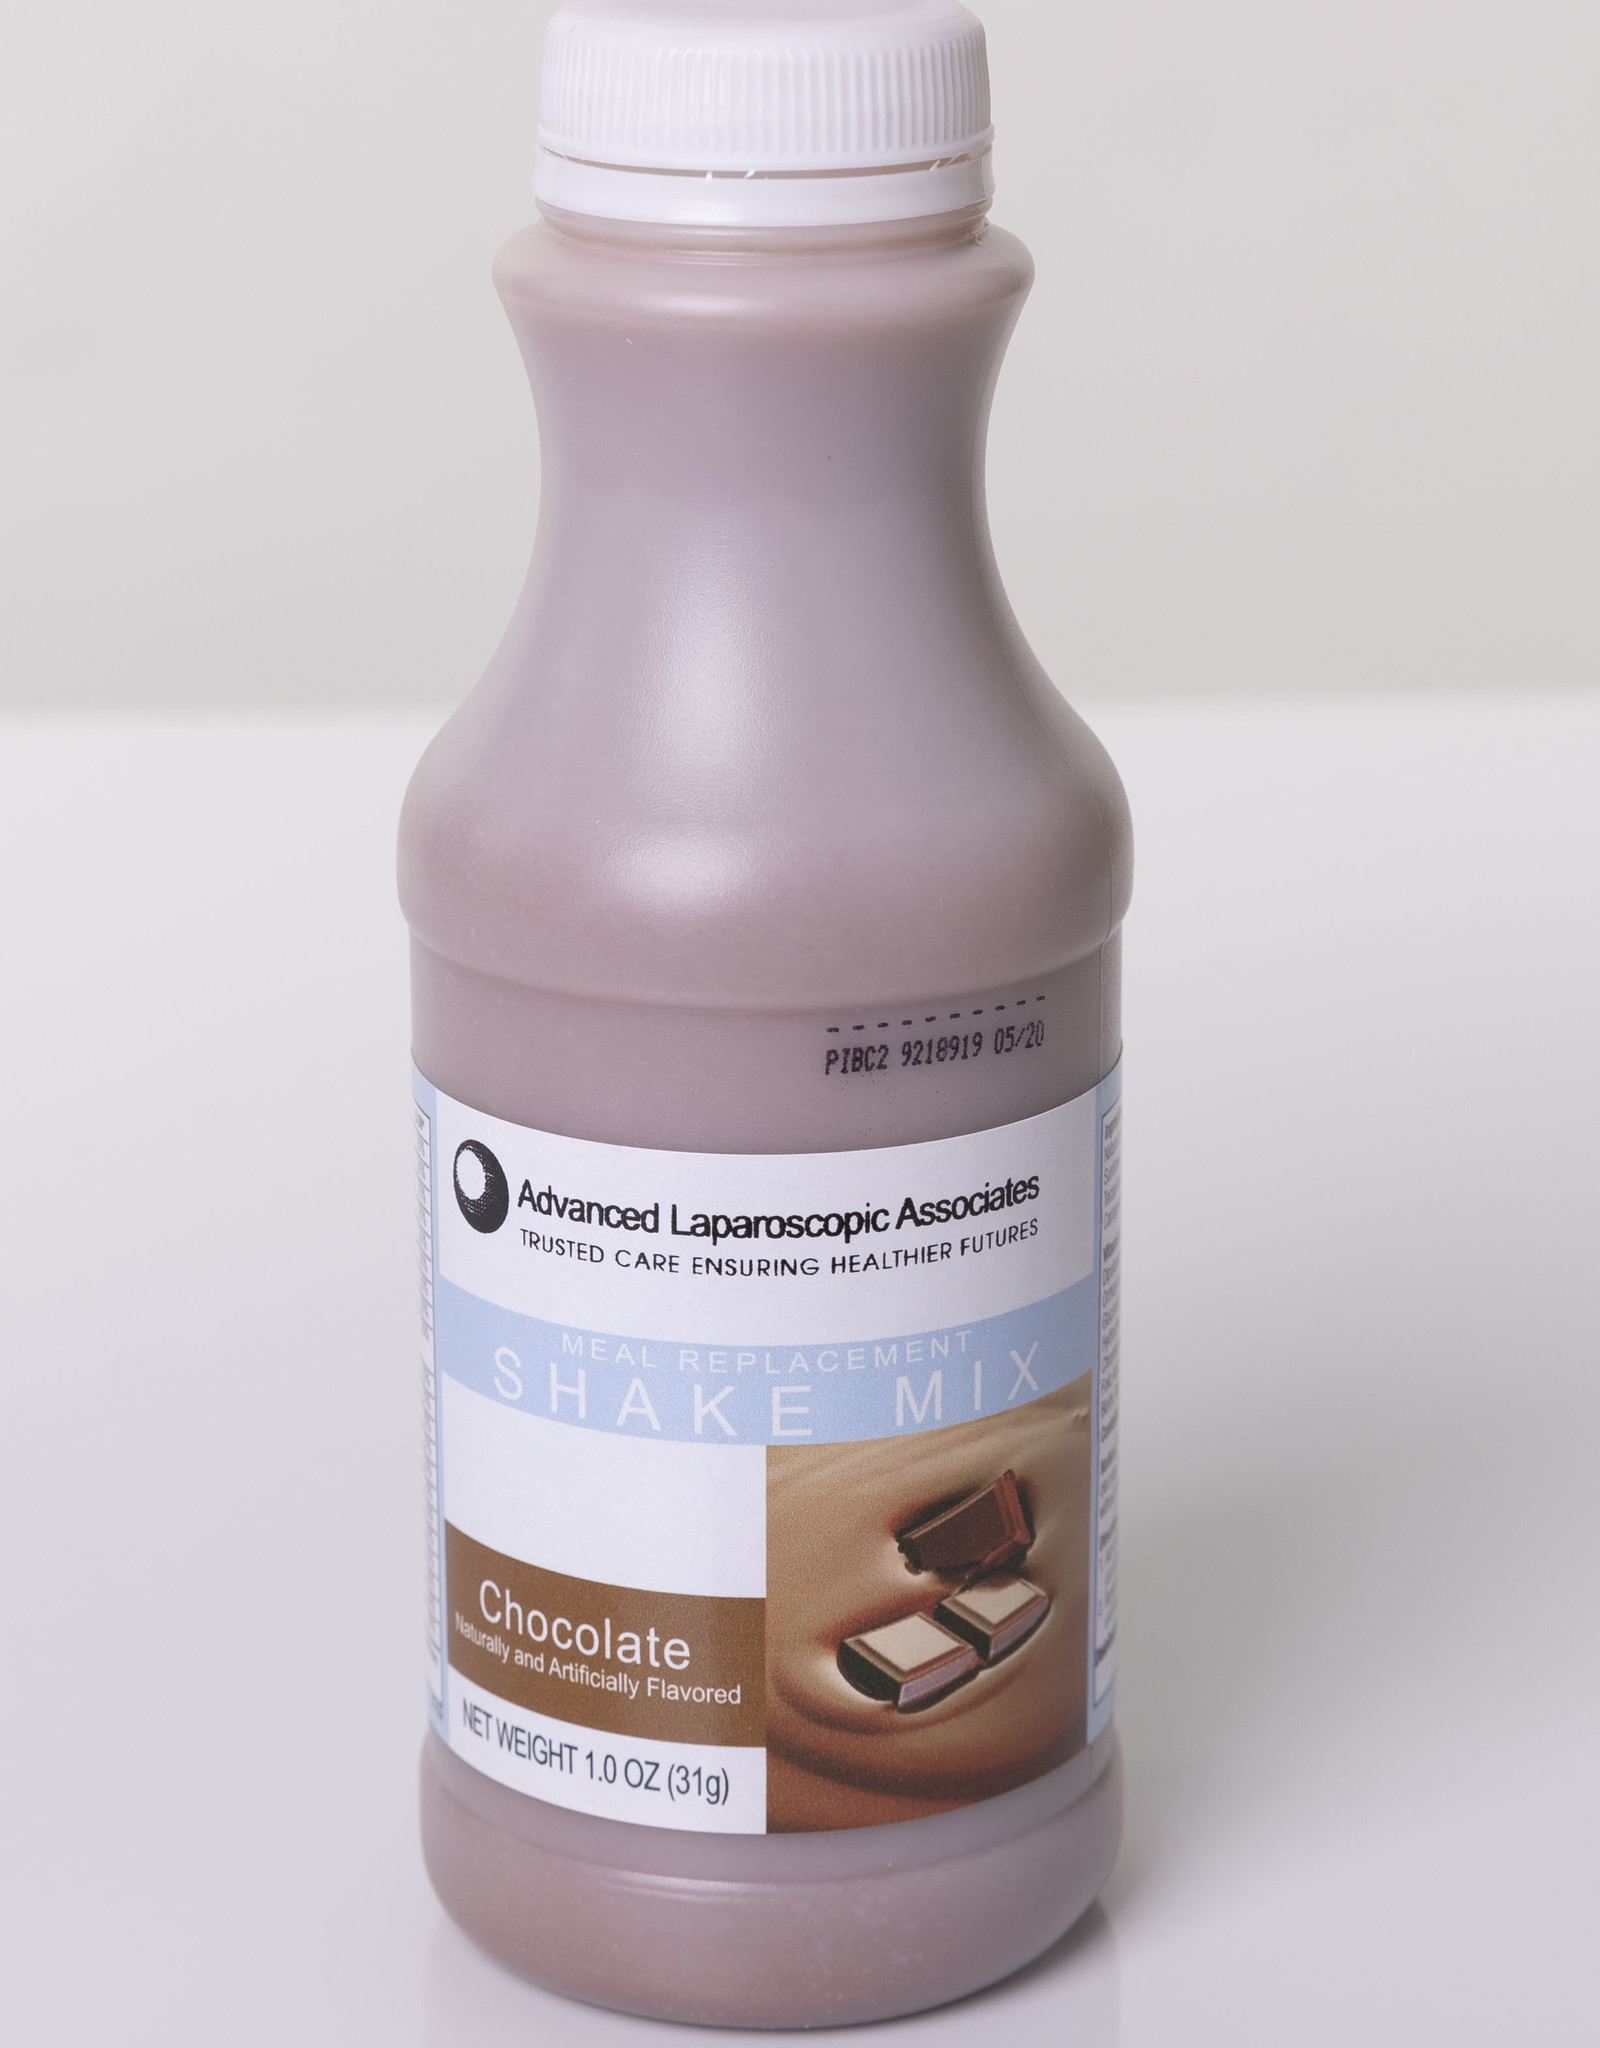 Advanced Laparoscopic Associates Chocolate Shake